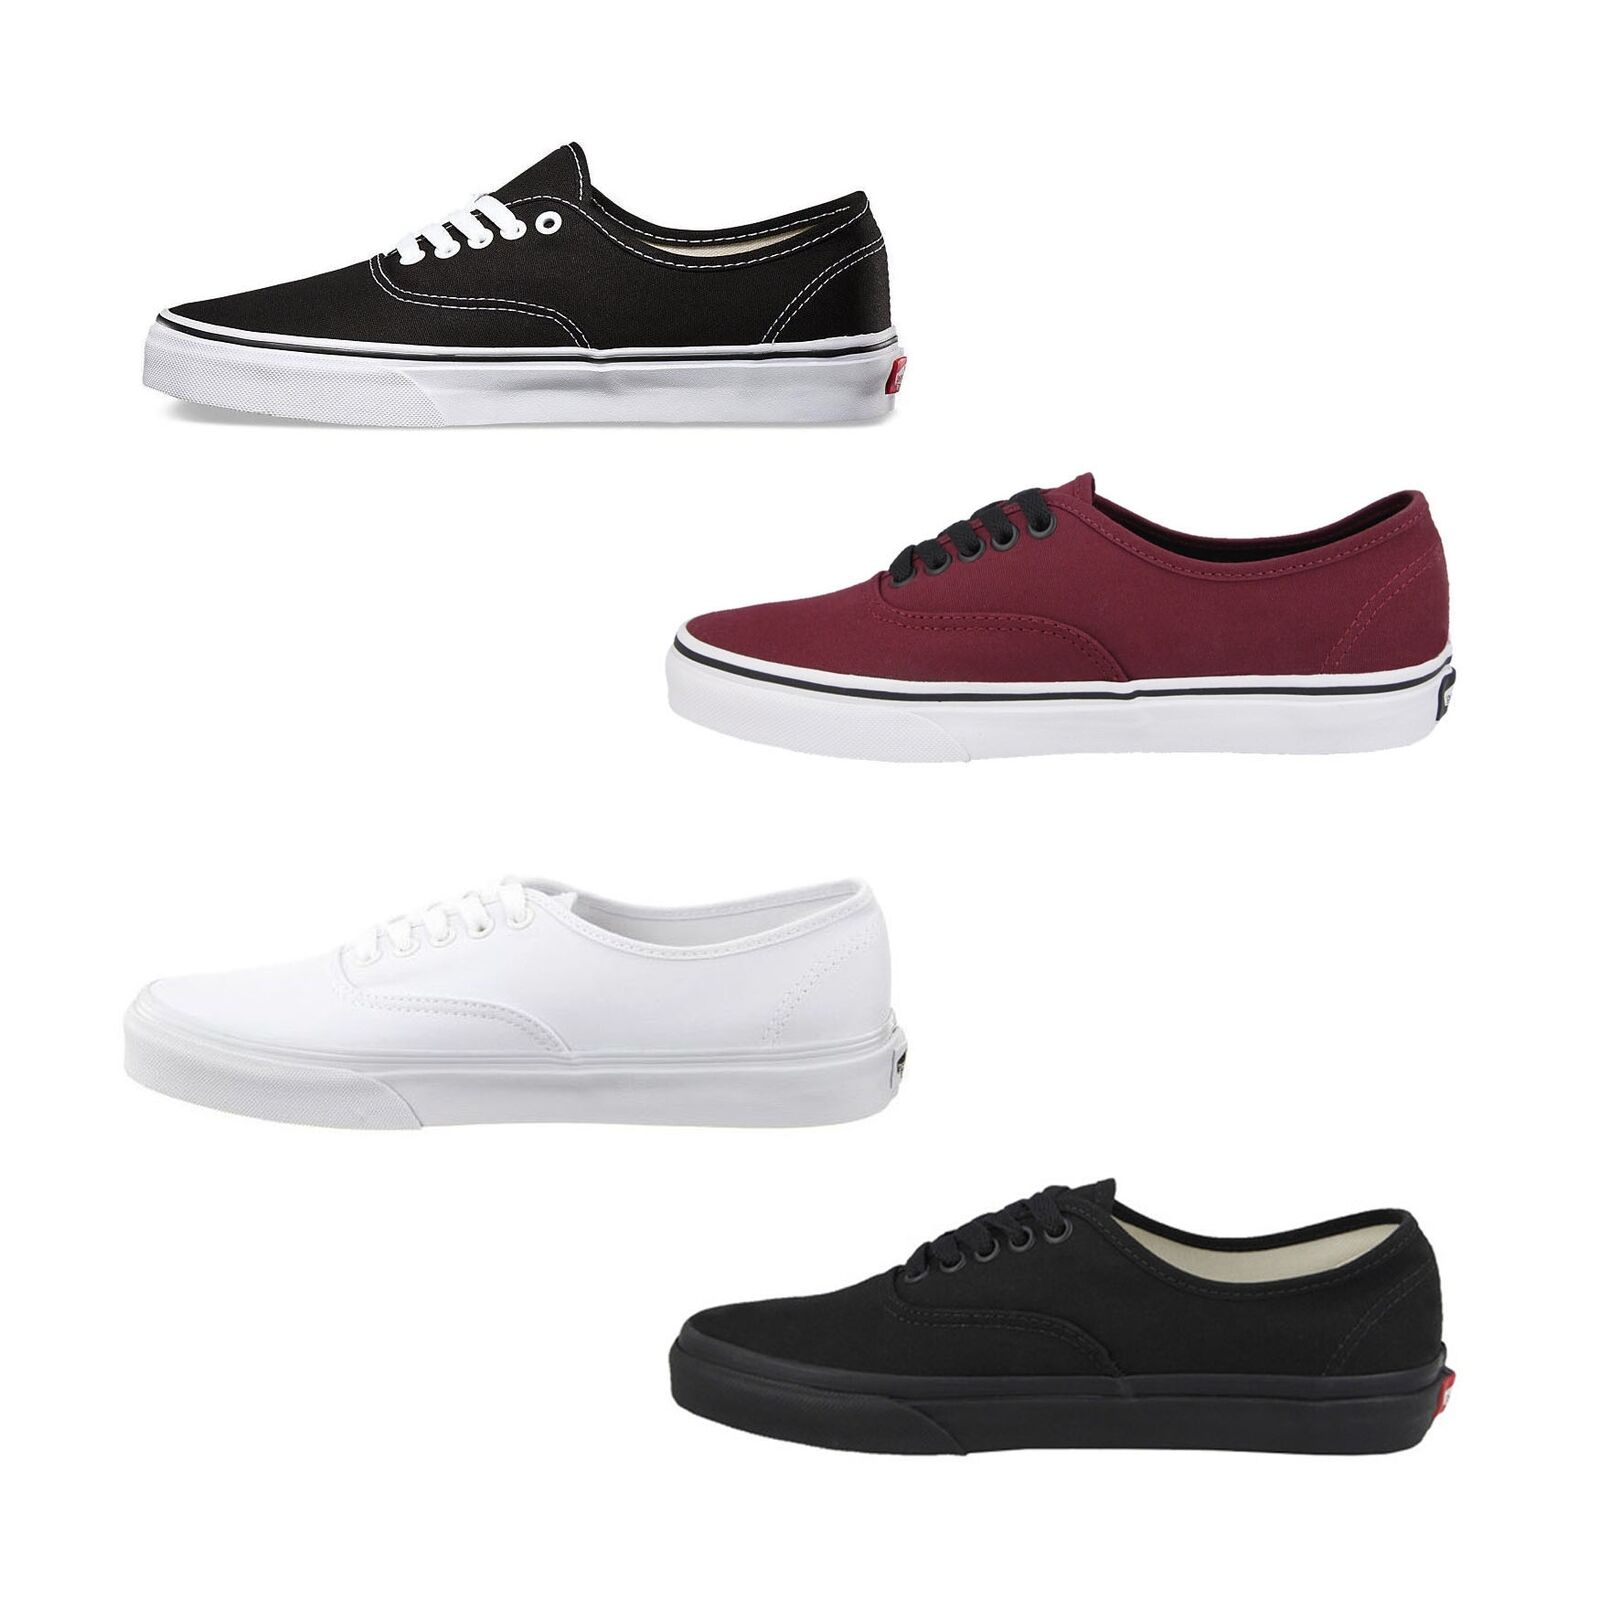 New Vans Authentic Skate Shoes Classic Canvas Uomo  All Sizes Colors NIB